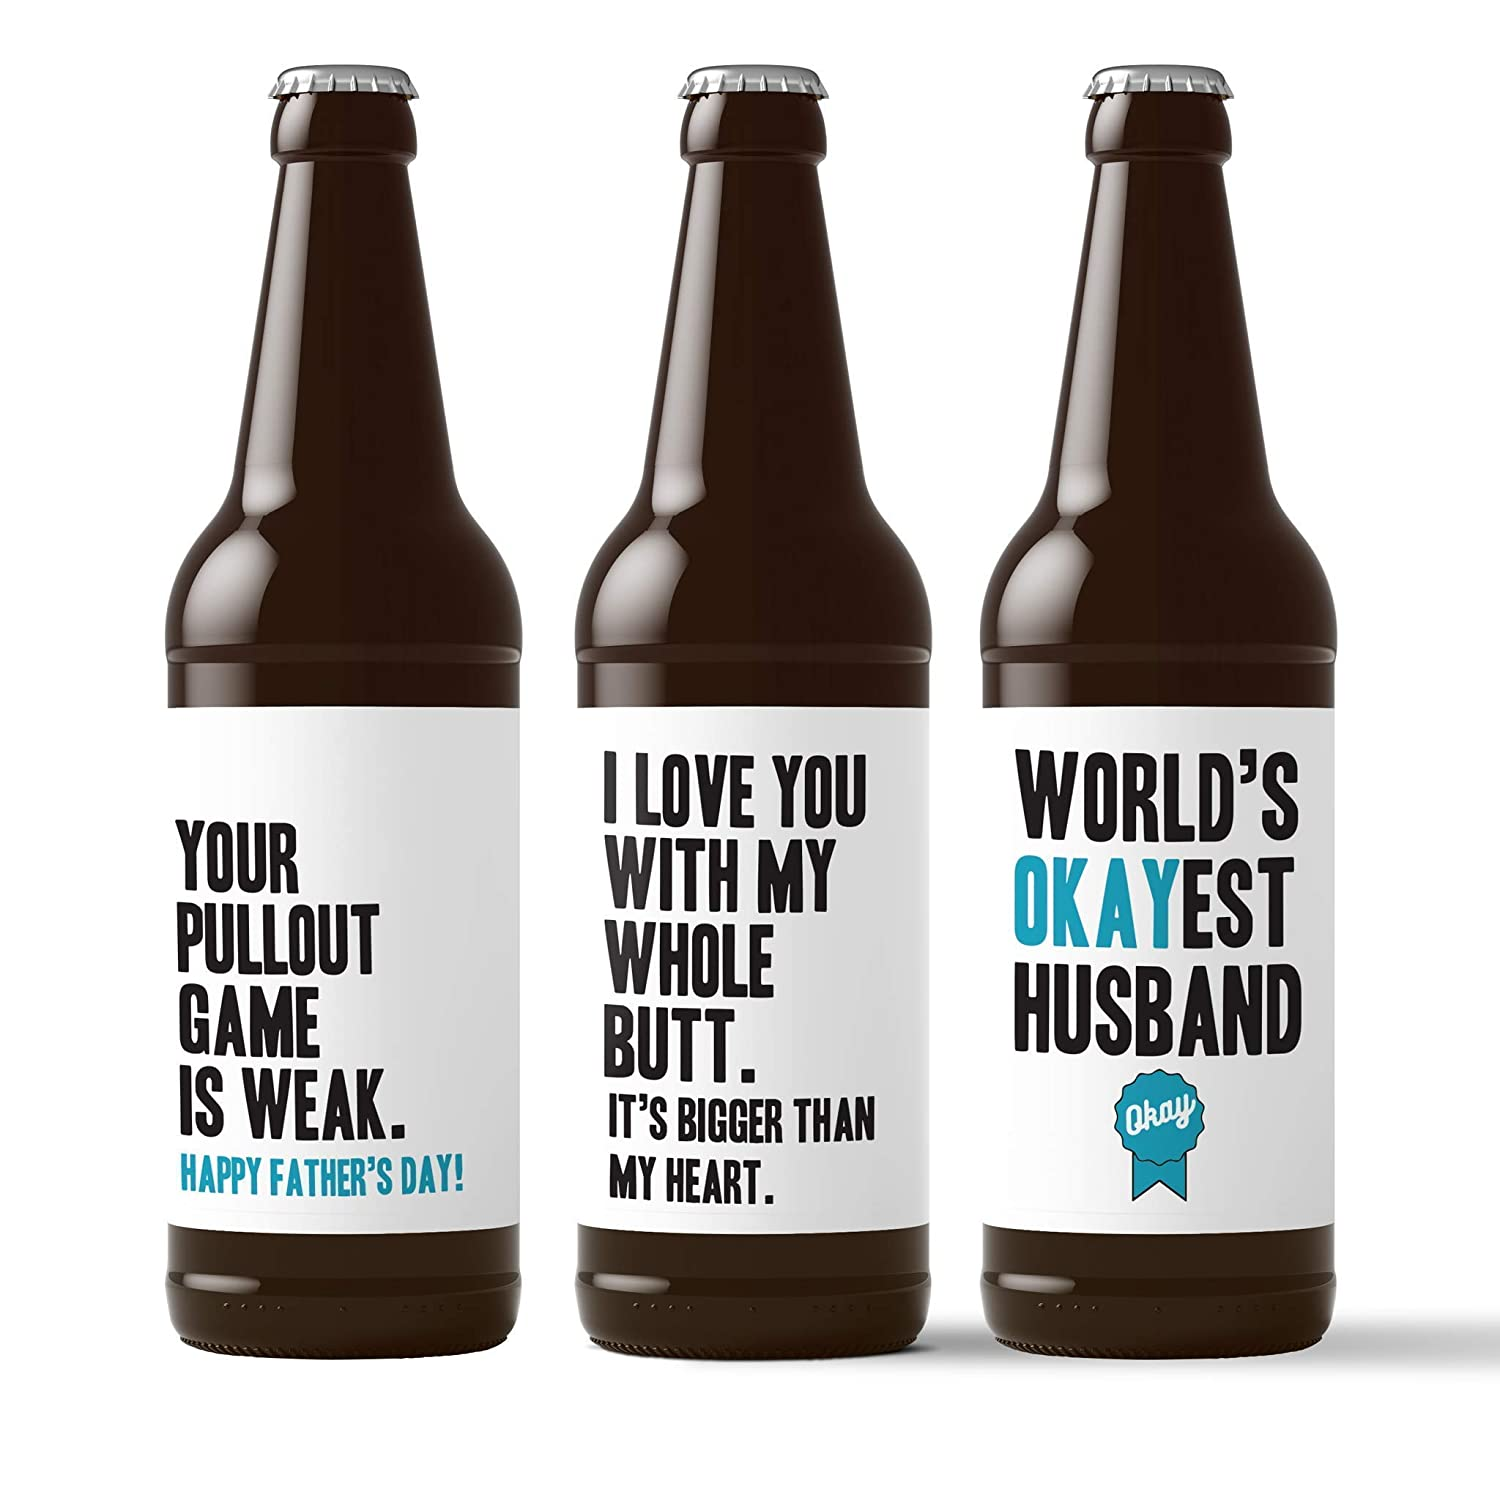 6 Pack Beer Stickers for 6-Pack Funny Present for Him DILF Youre My Favorite Thing To Do Love You With My Whole Butt Husband Fathers Day Beer Labels Worlds Okayest Husband